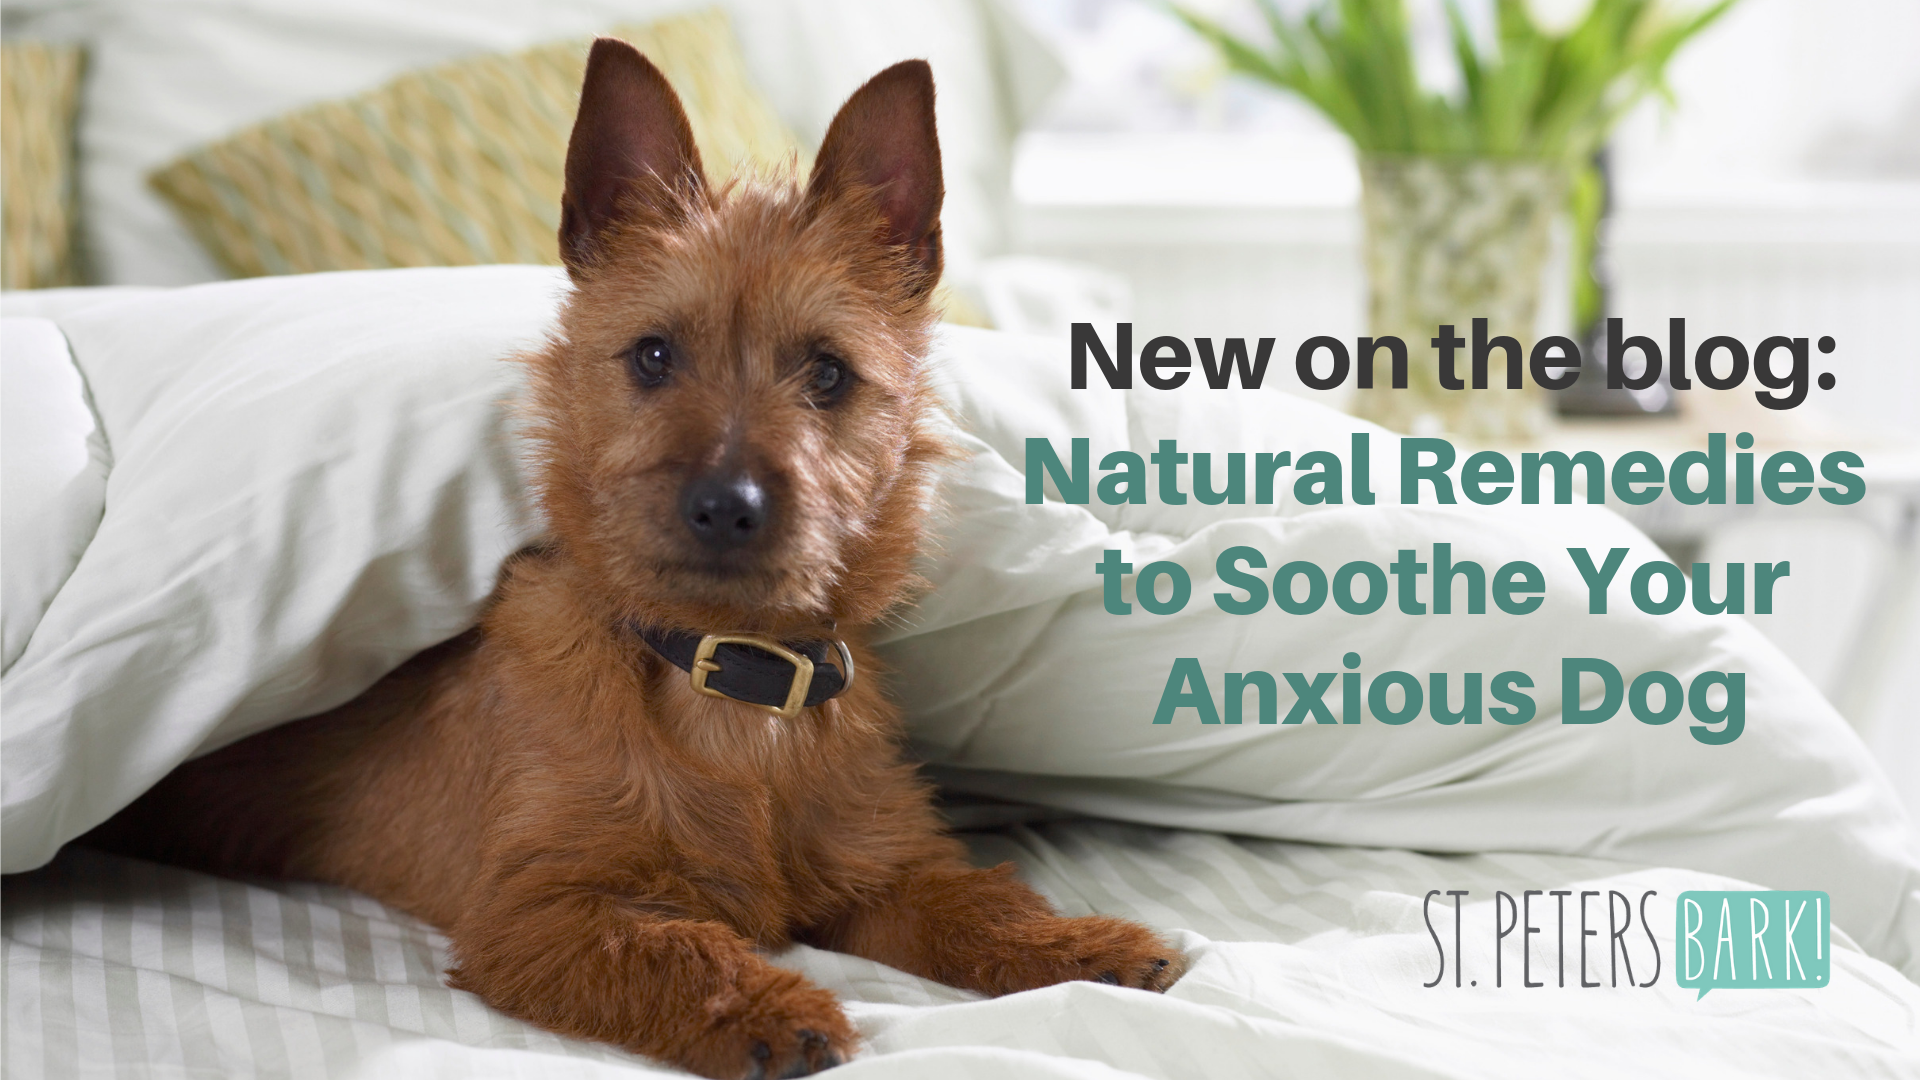 Natural Remedies to Soothe Your Anxious Dog